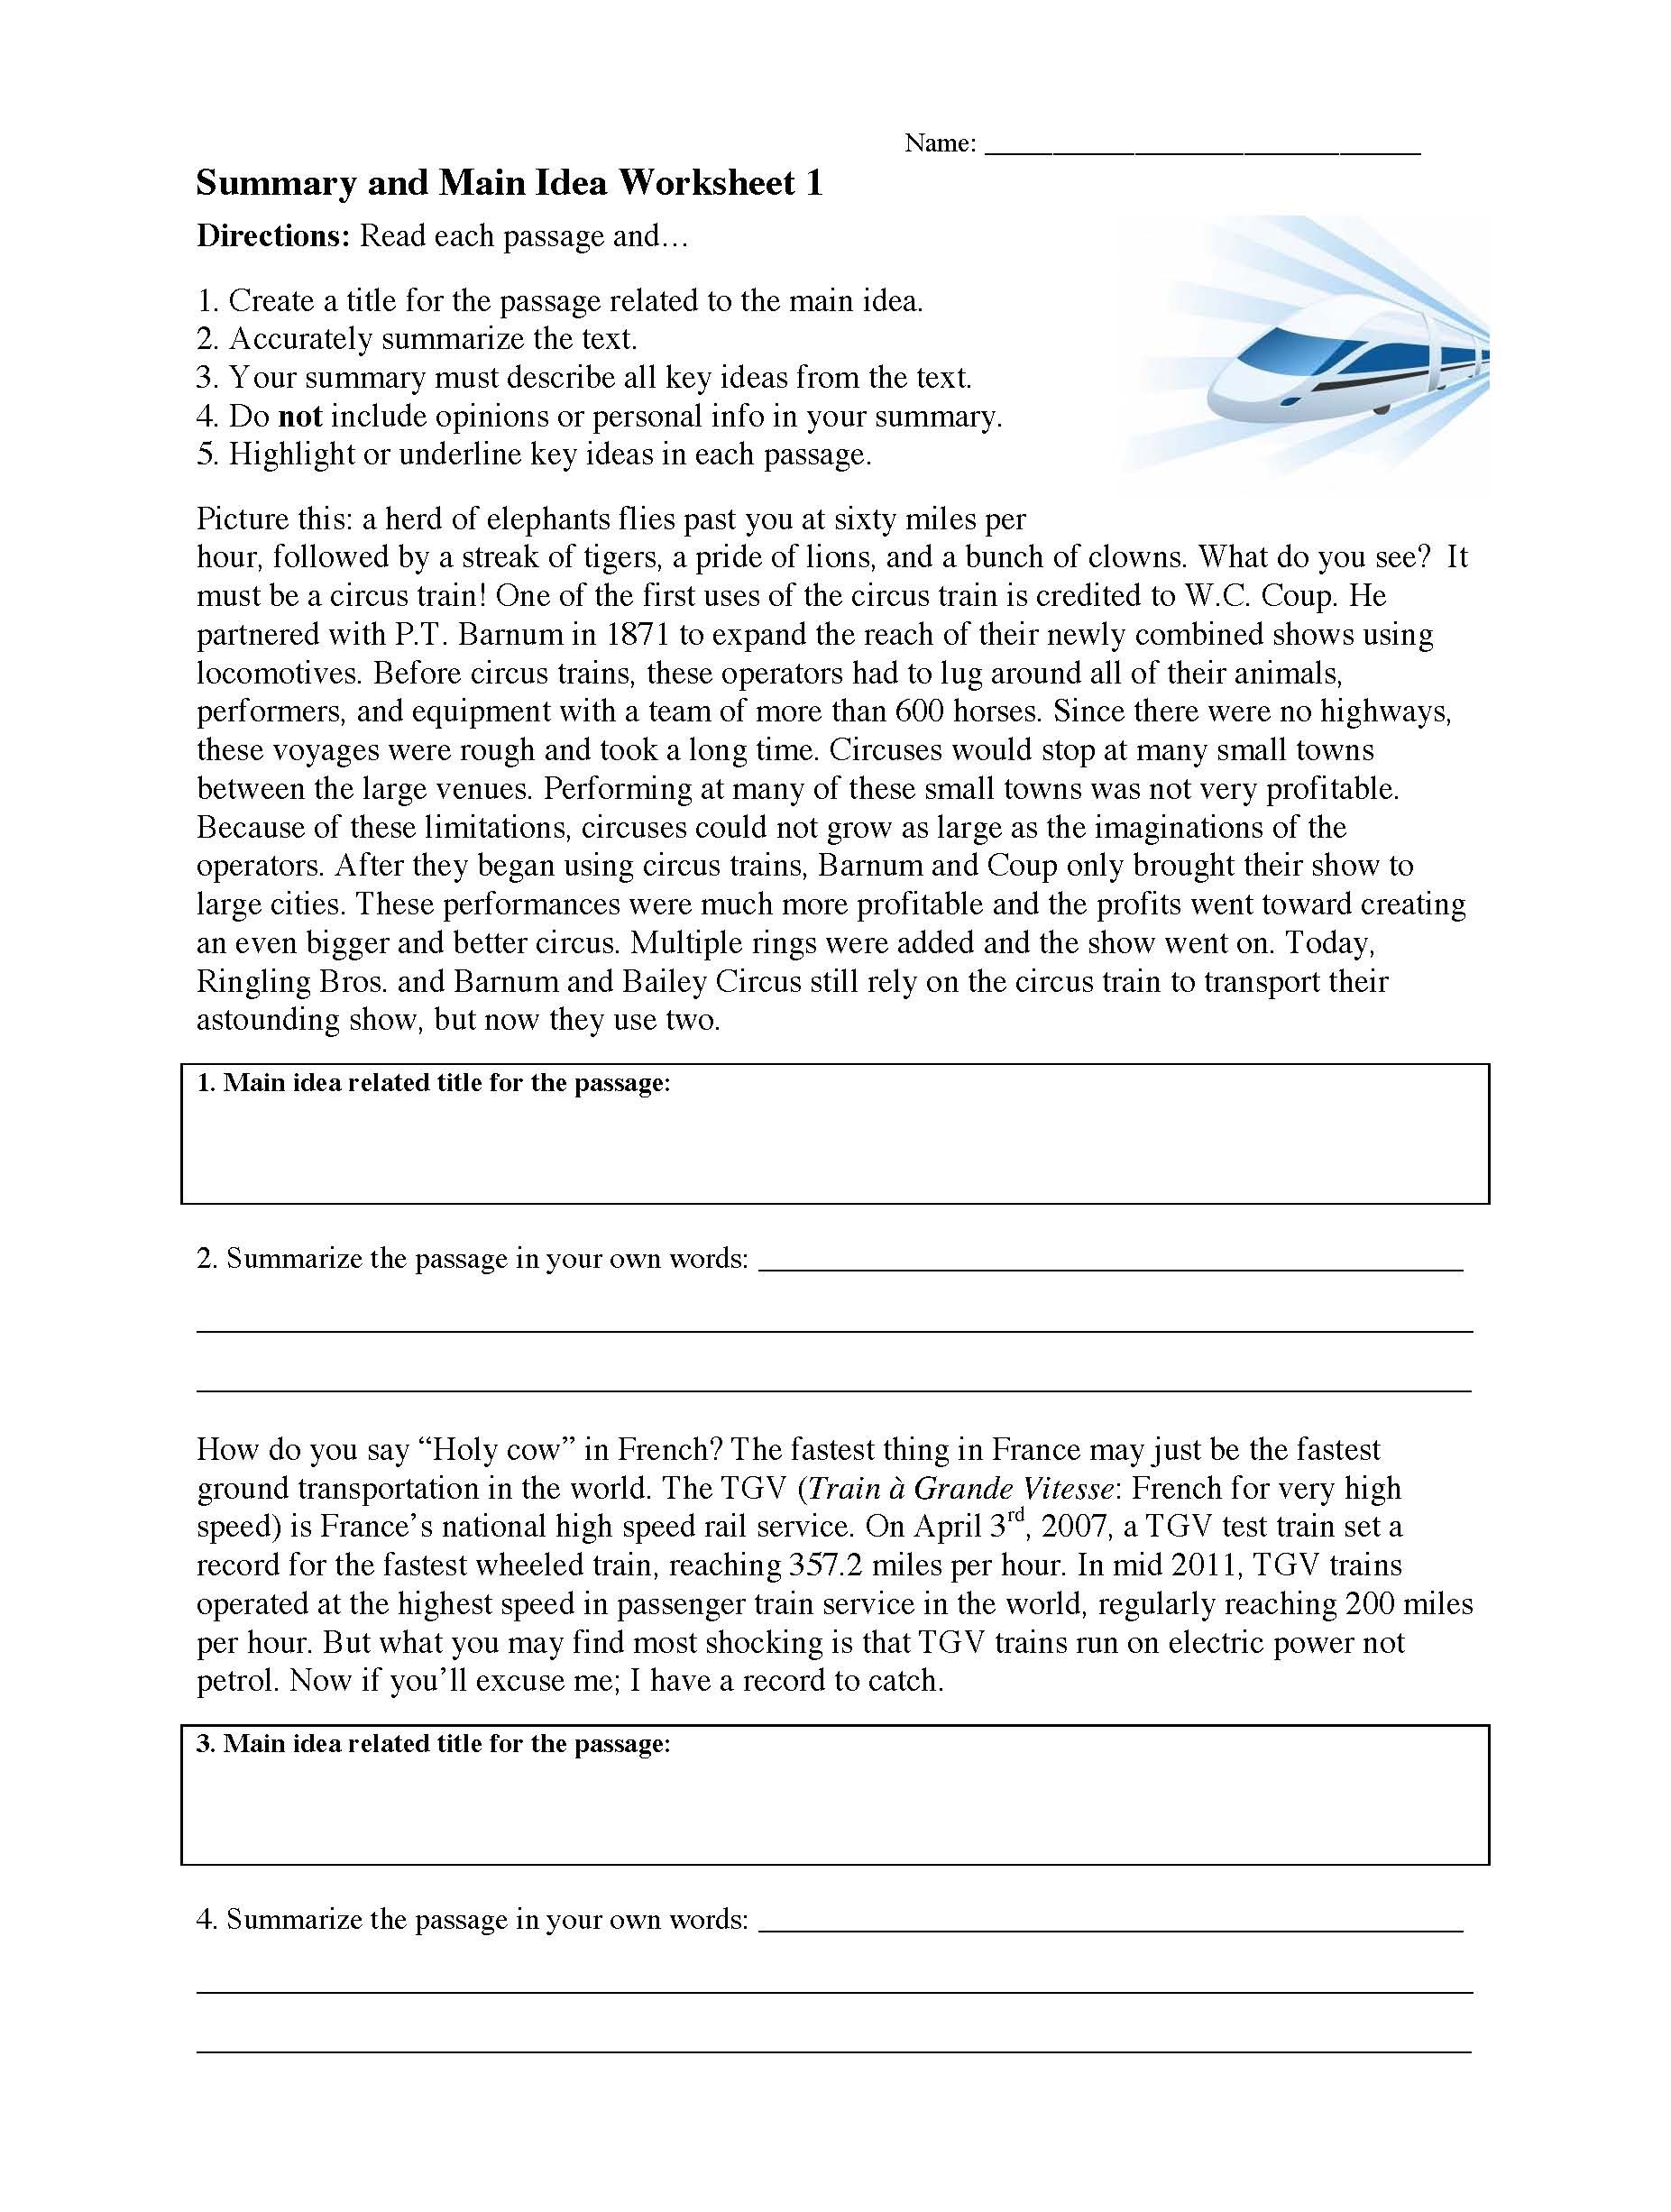 6th Grade Summarizing Worksheets Summarizing Worksheets Learn to Summarize